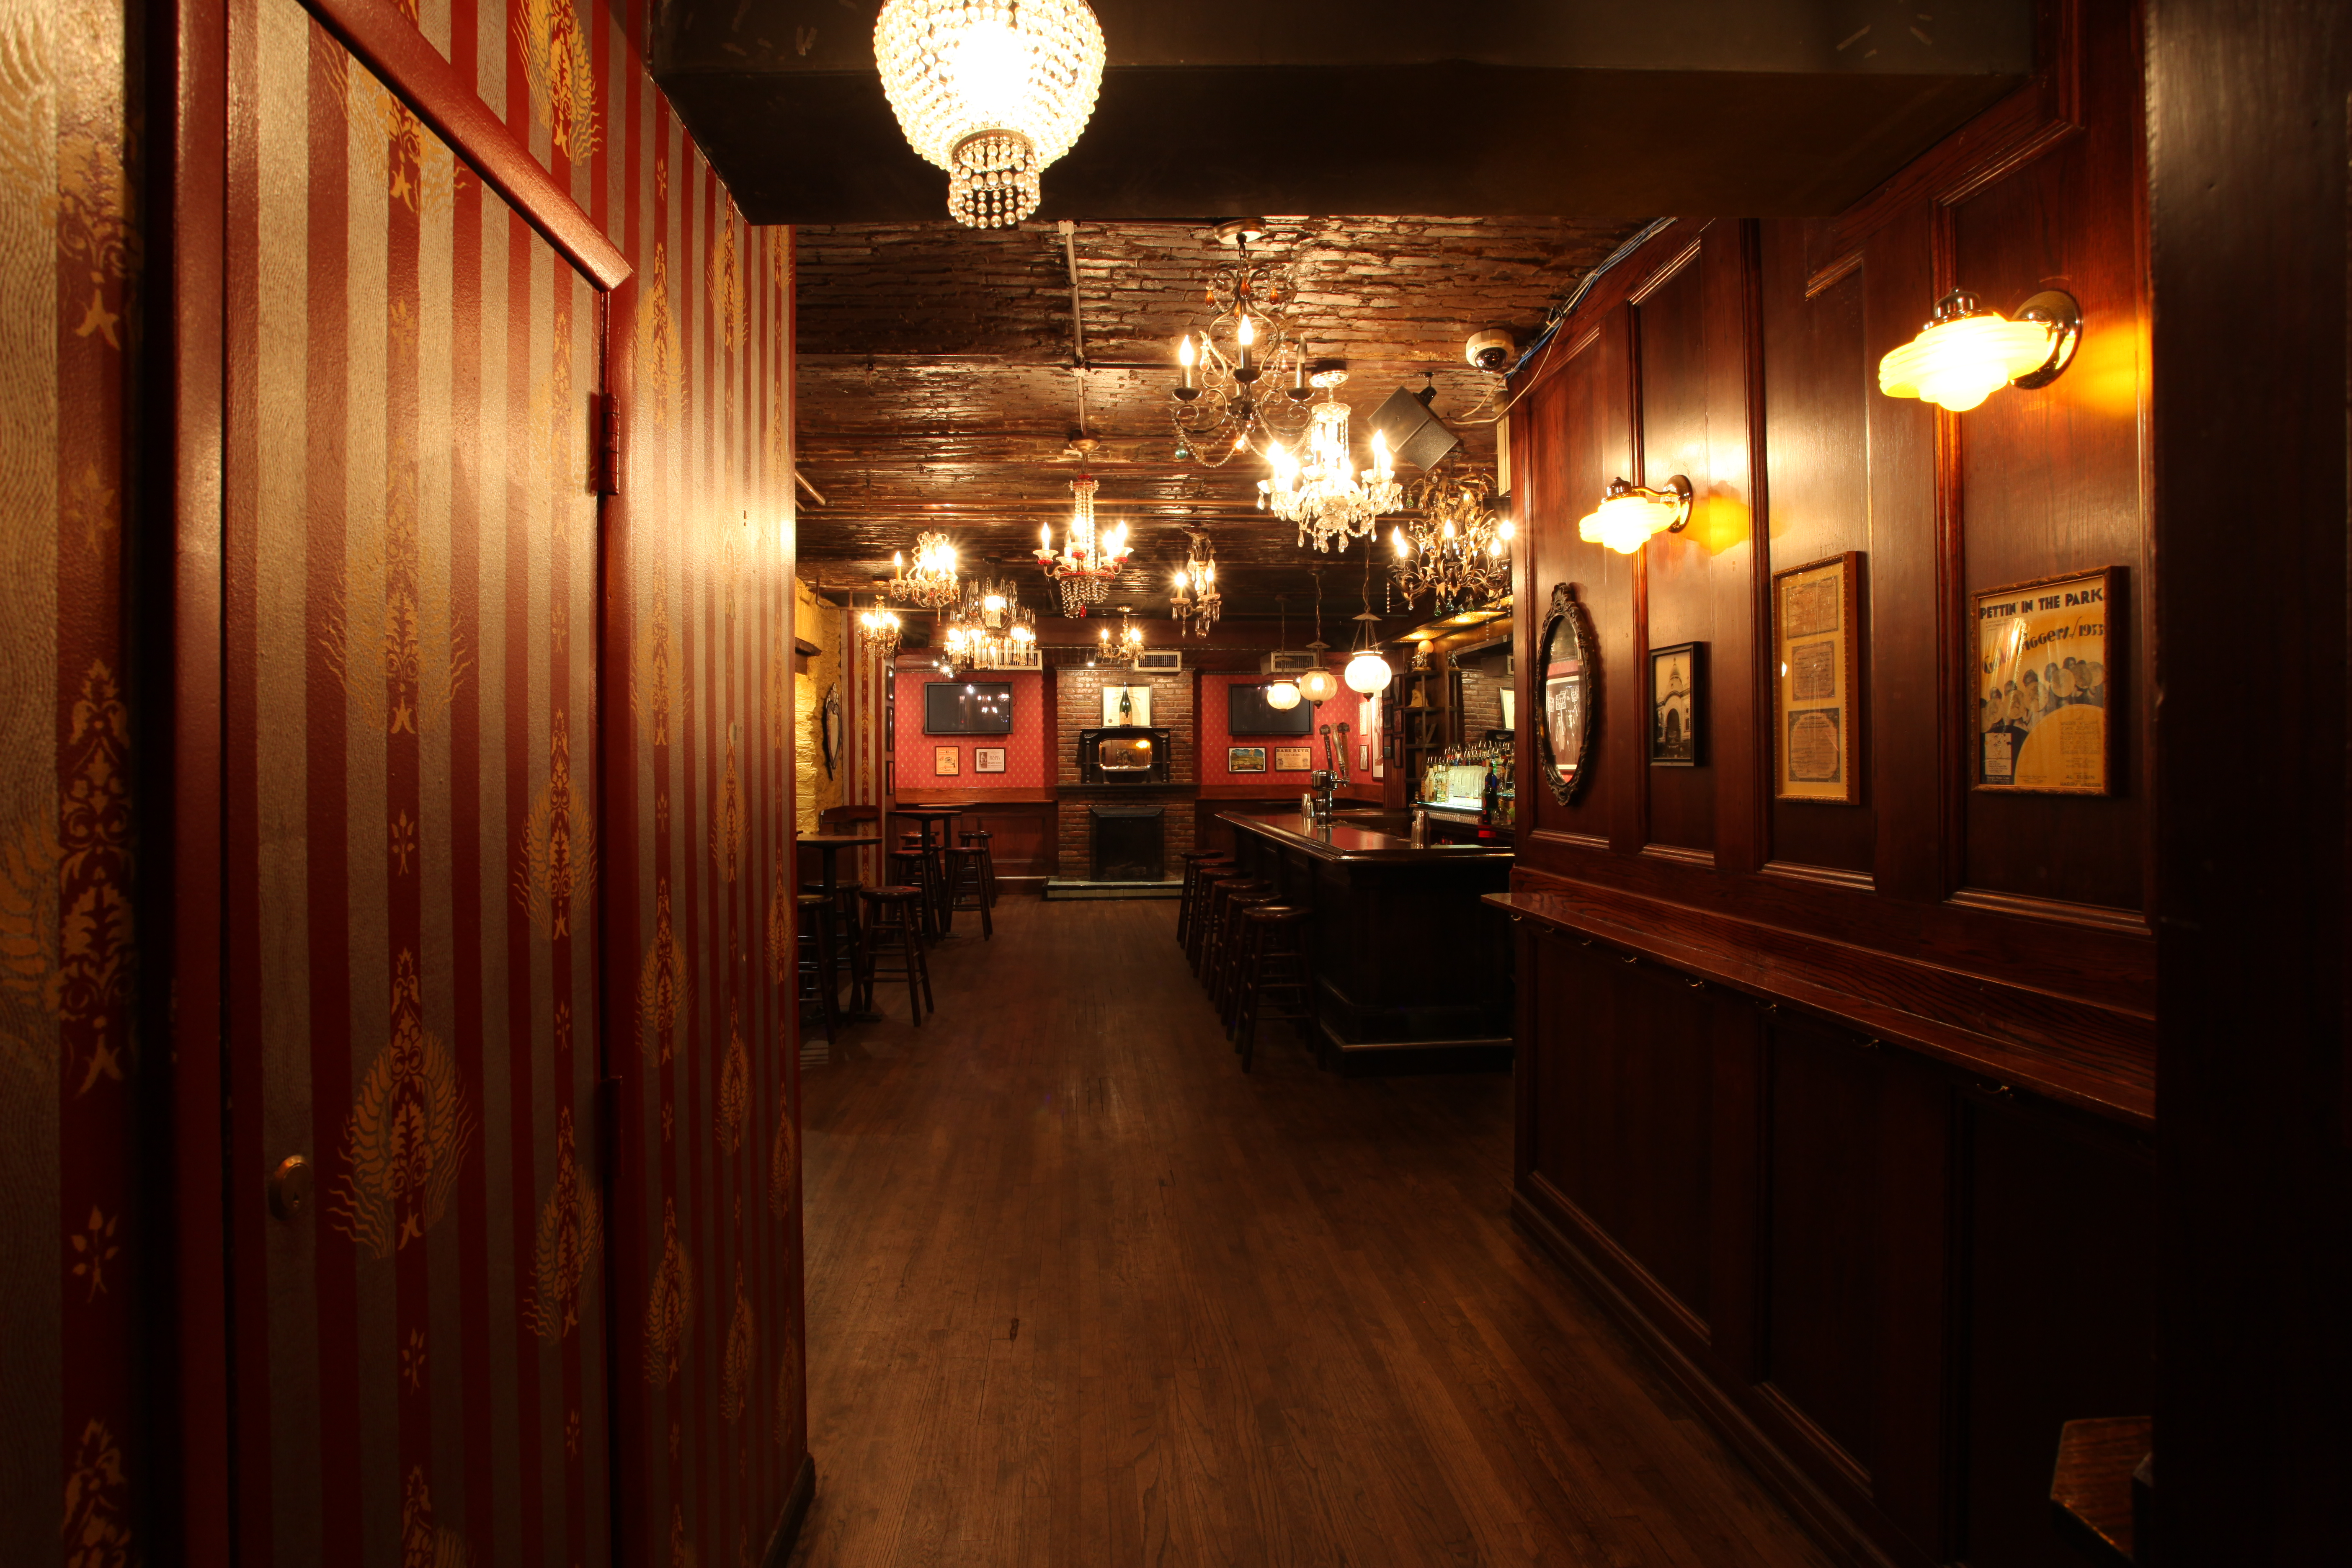 Speakeasy Room Testimonials For Eat Drink Amp Be Merry